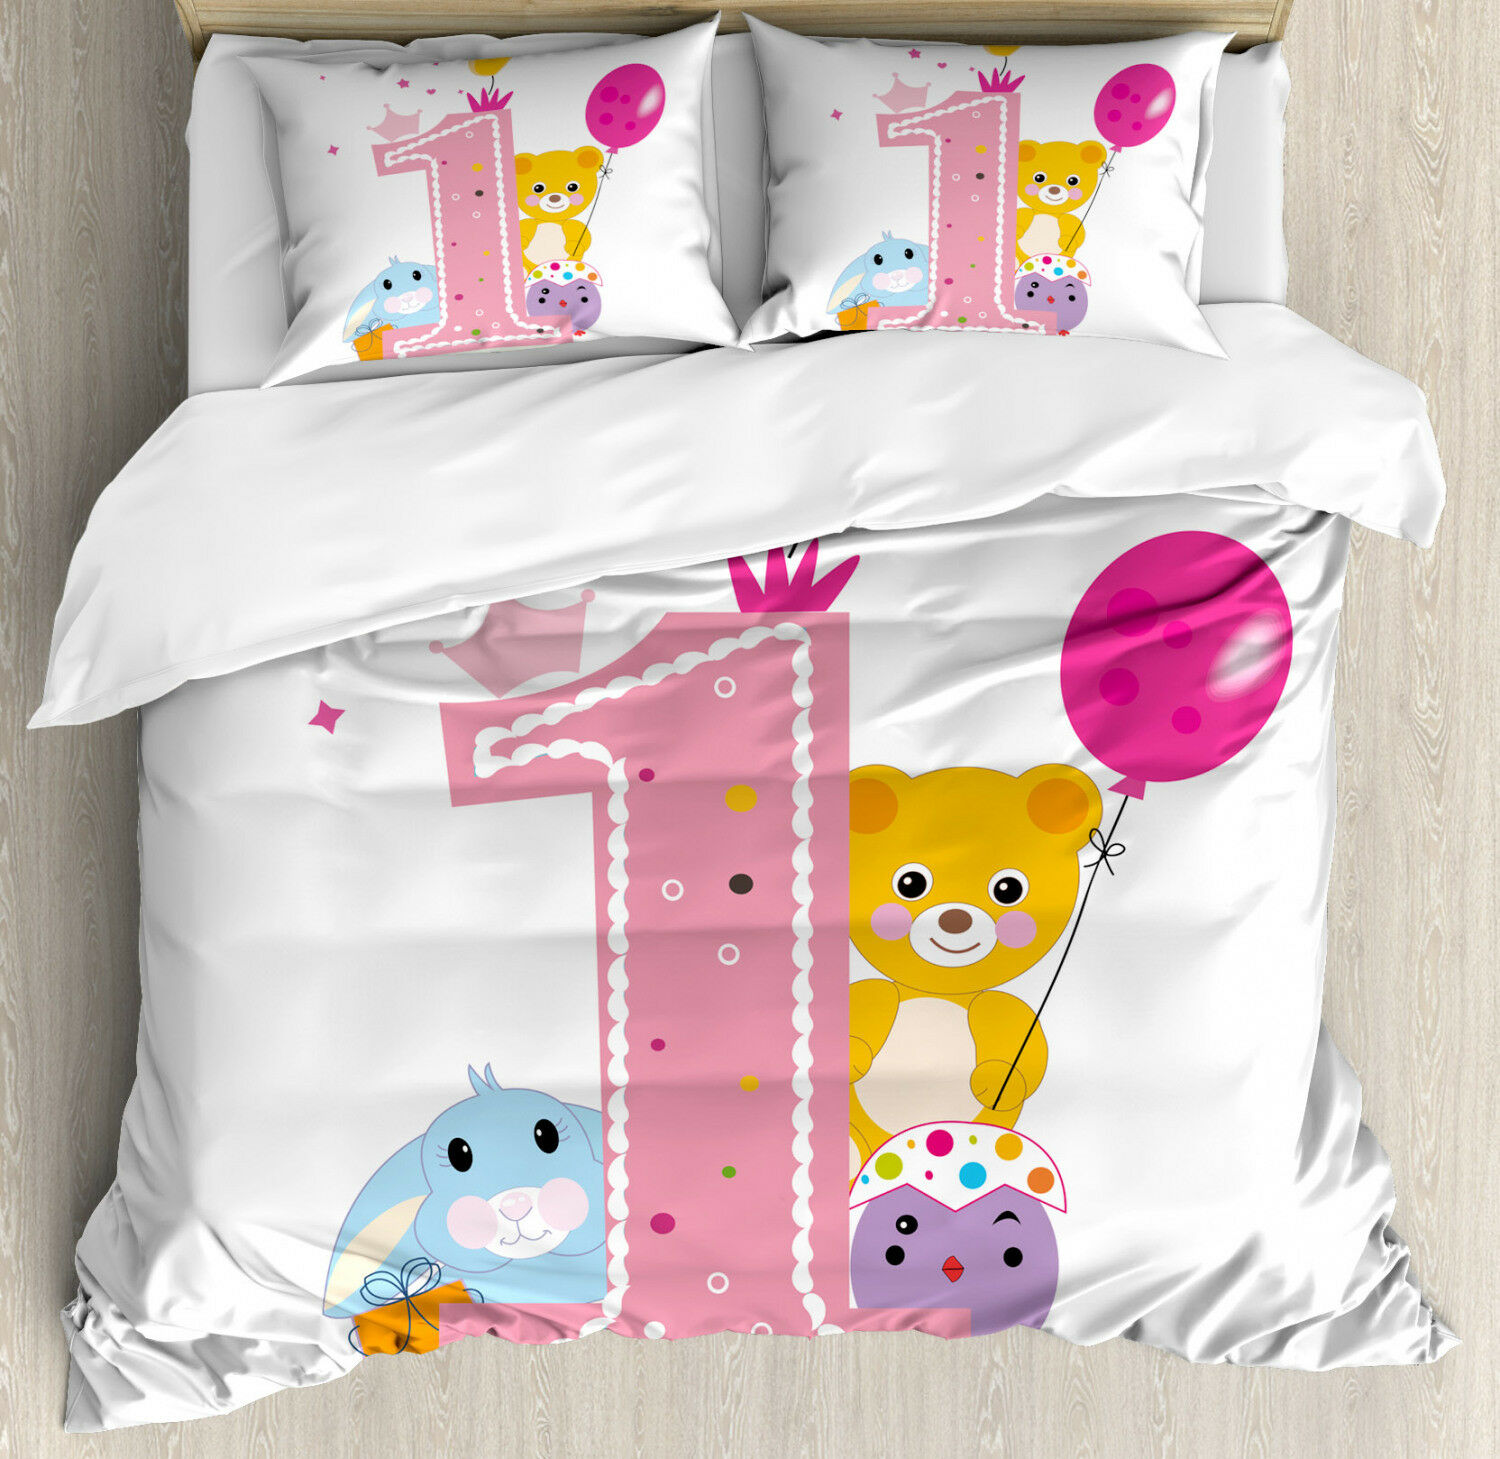 Birthday Duvet Cover Set with Pillow Shams Princess Girl Party Print